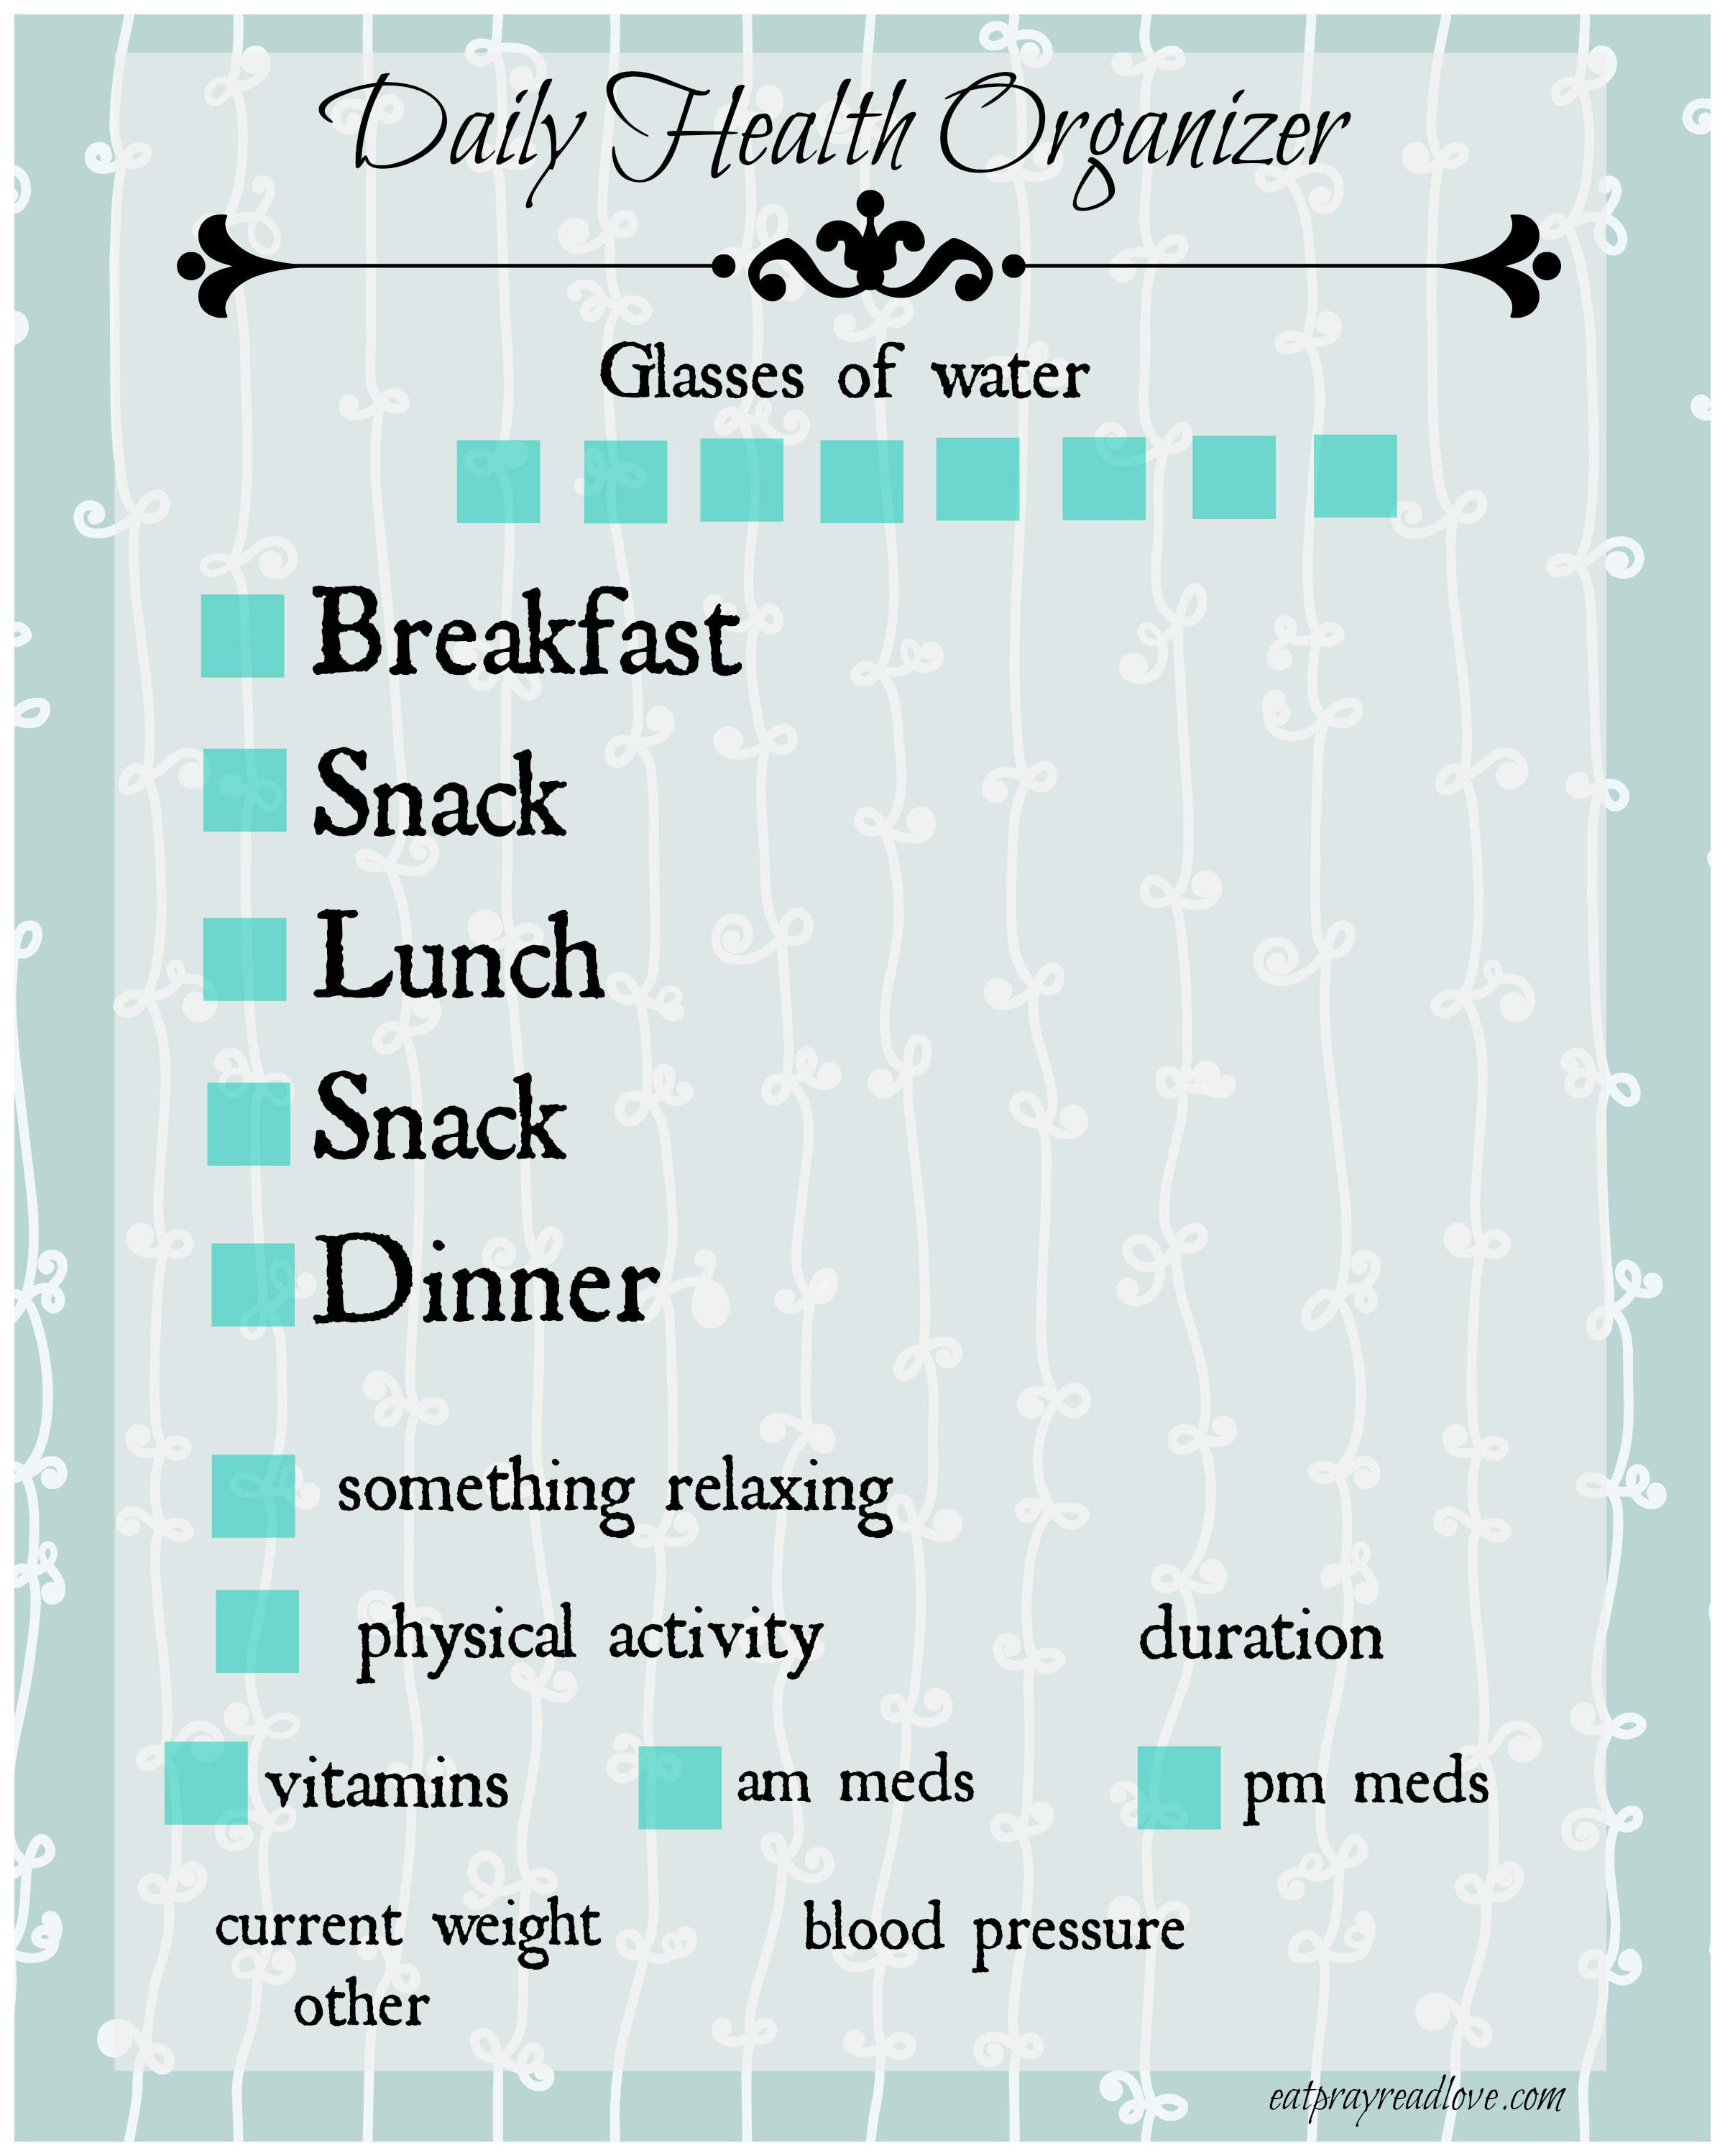 Free Printable Daily Health Organizer 10 Tips To Get YOU More Organized